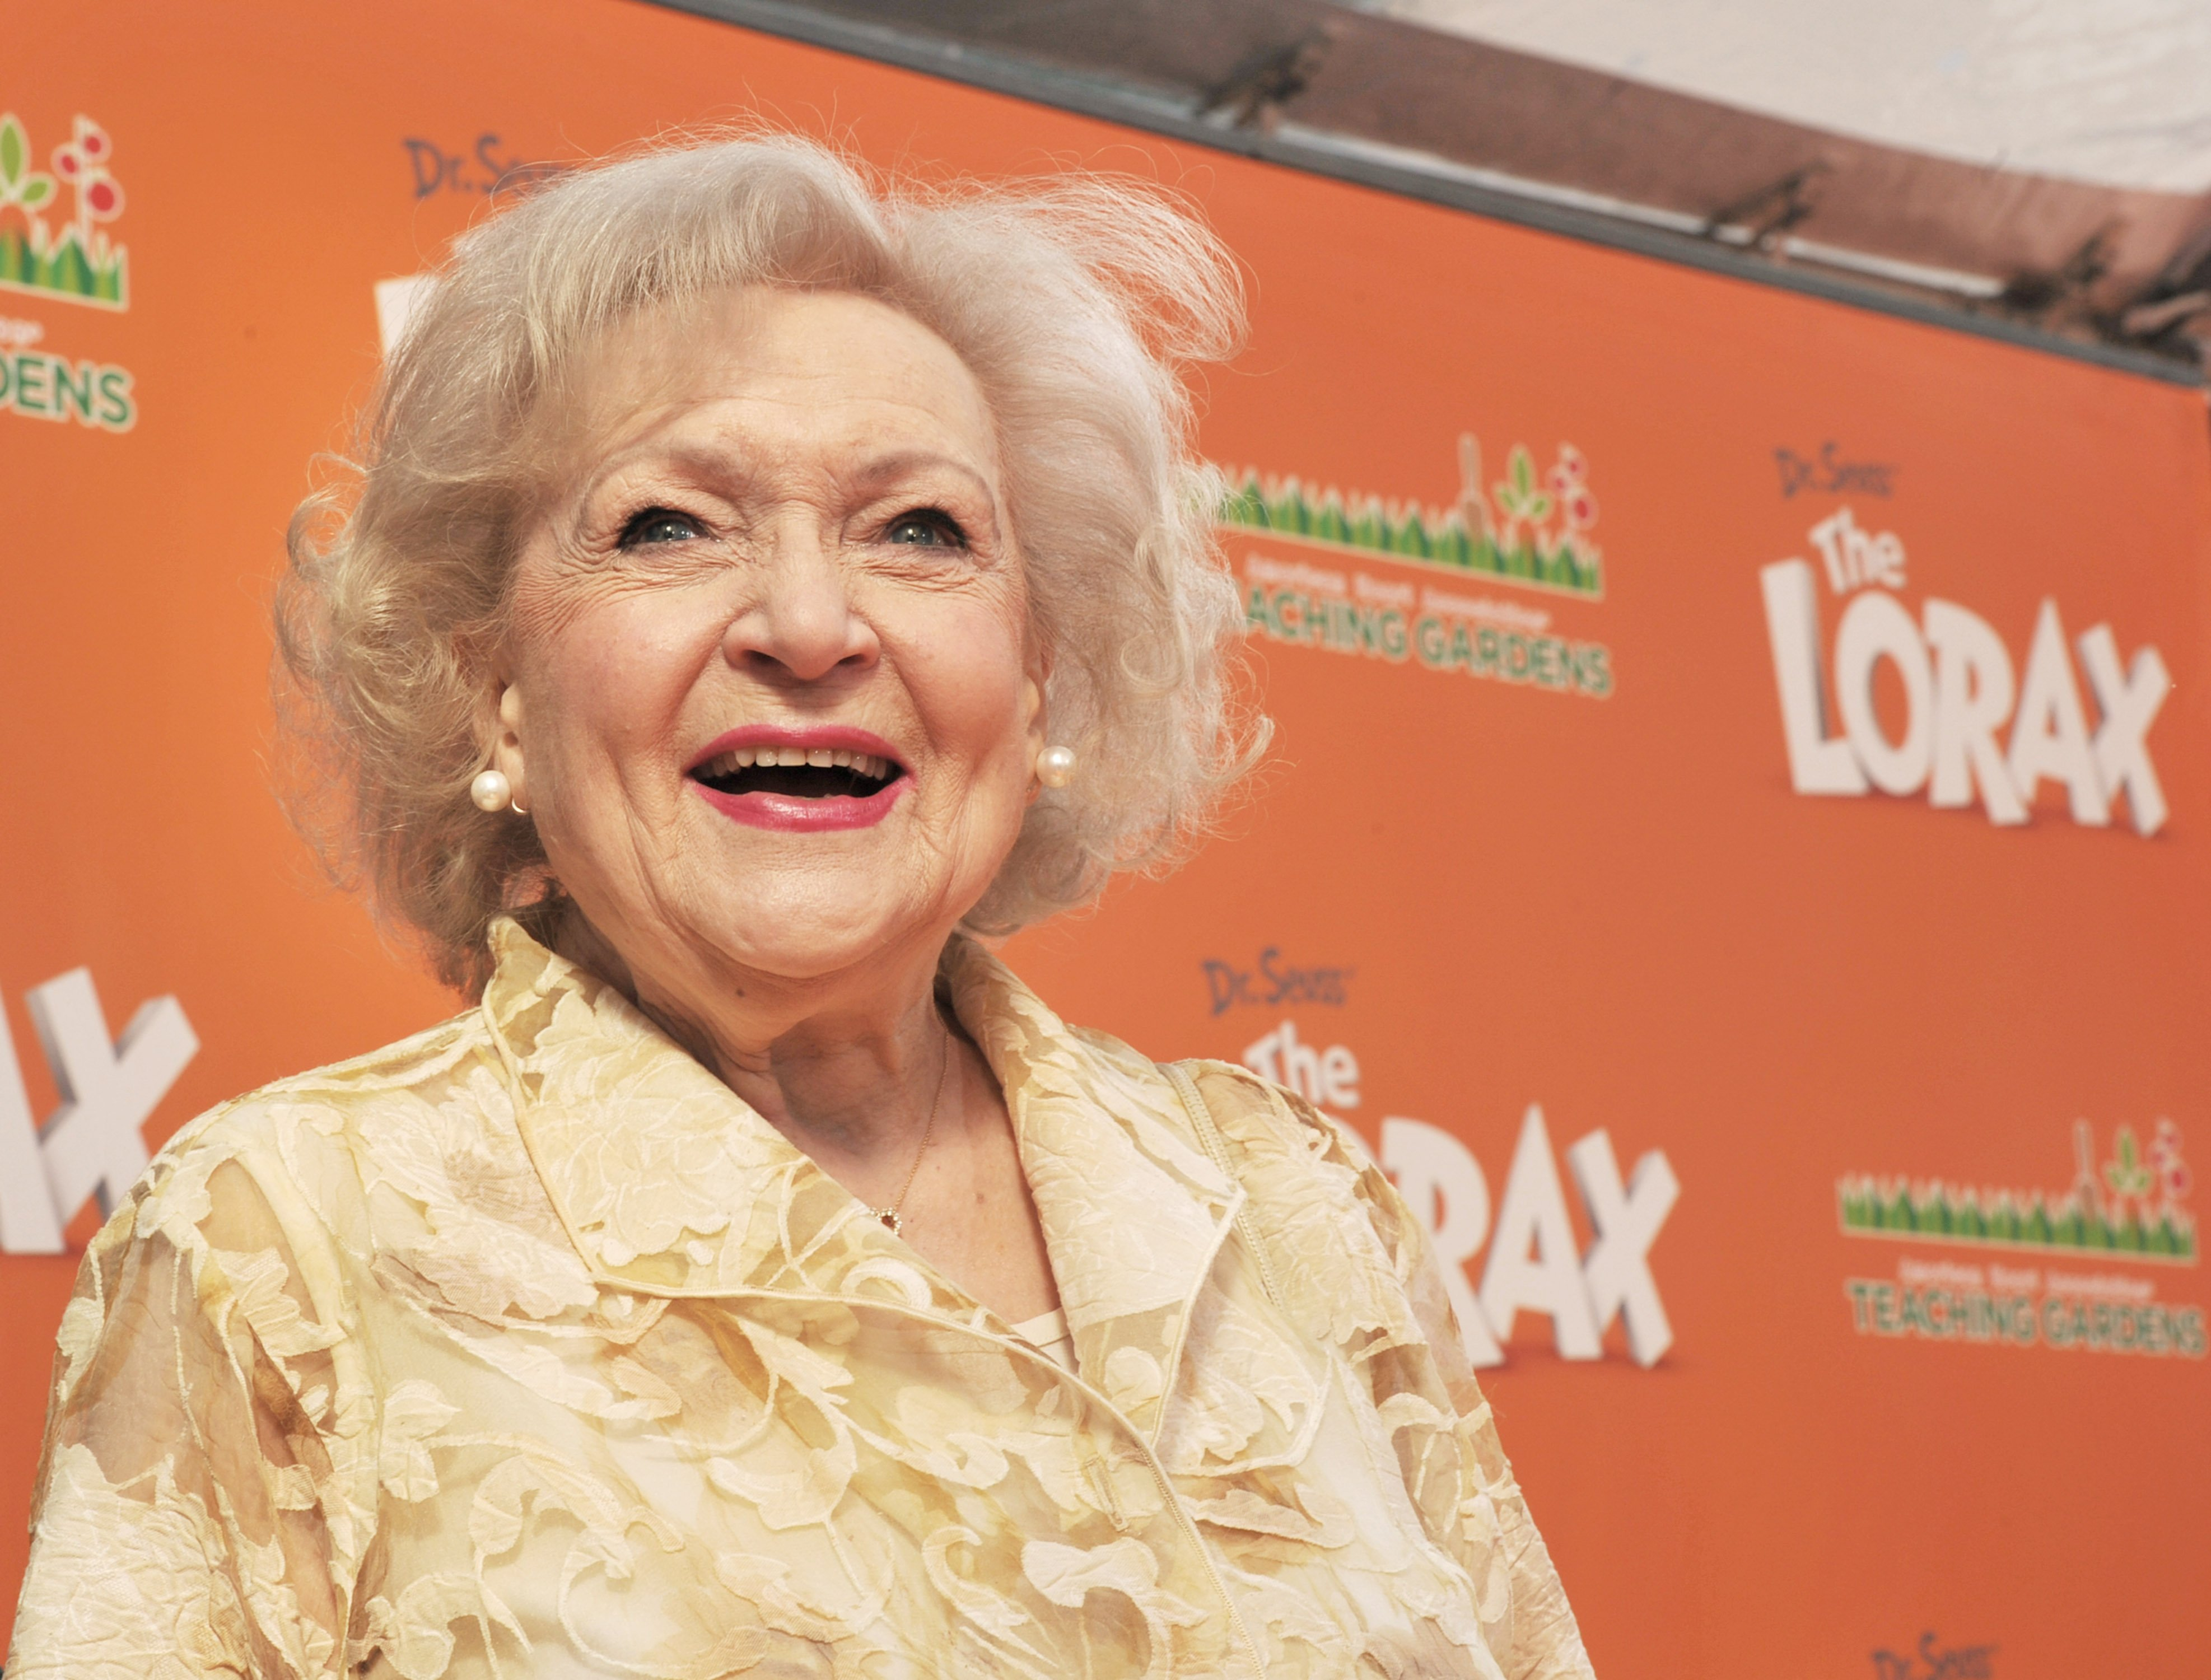 """Betty White pictured at the premiere of Universal Pictures Dr. Seuss' The Lorax"""" at Citywalk'.  2012, California. 